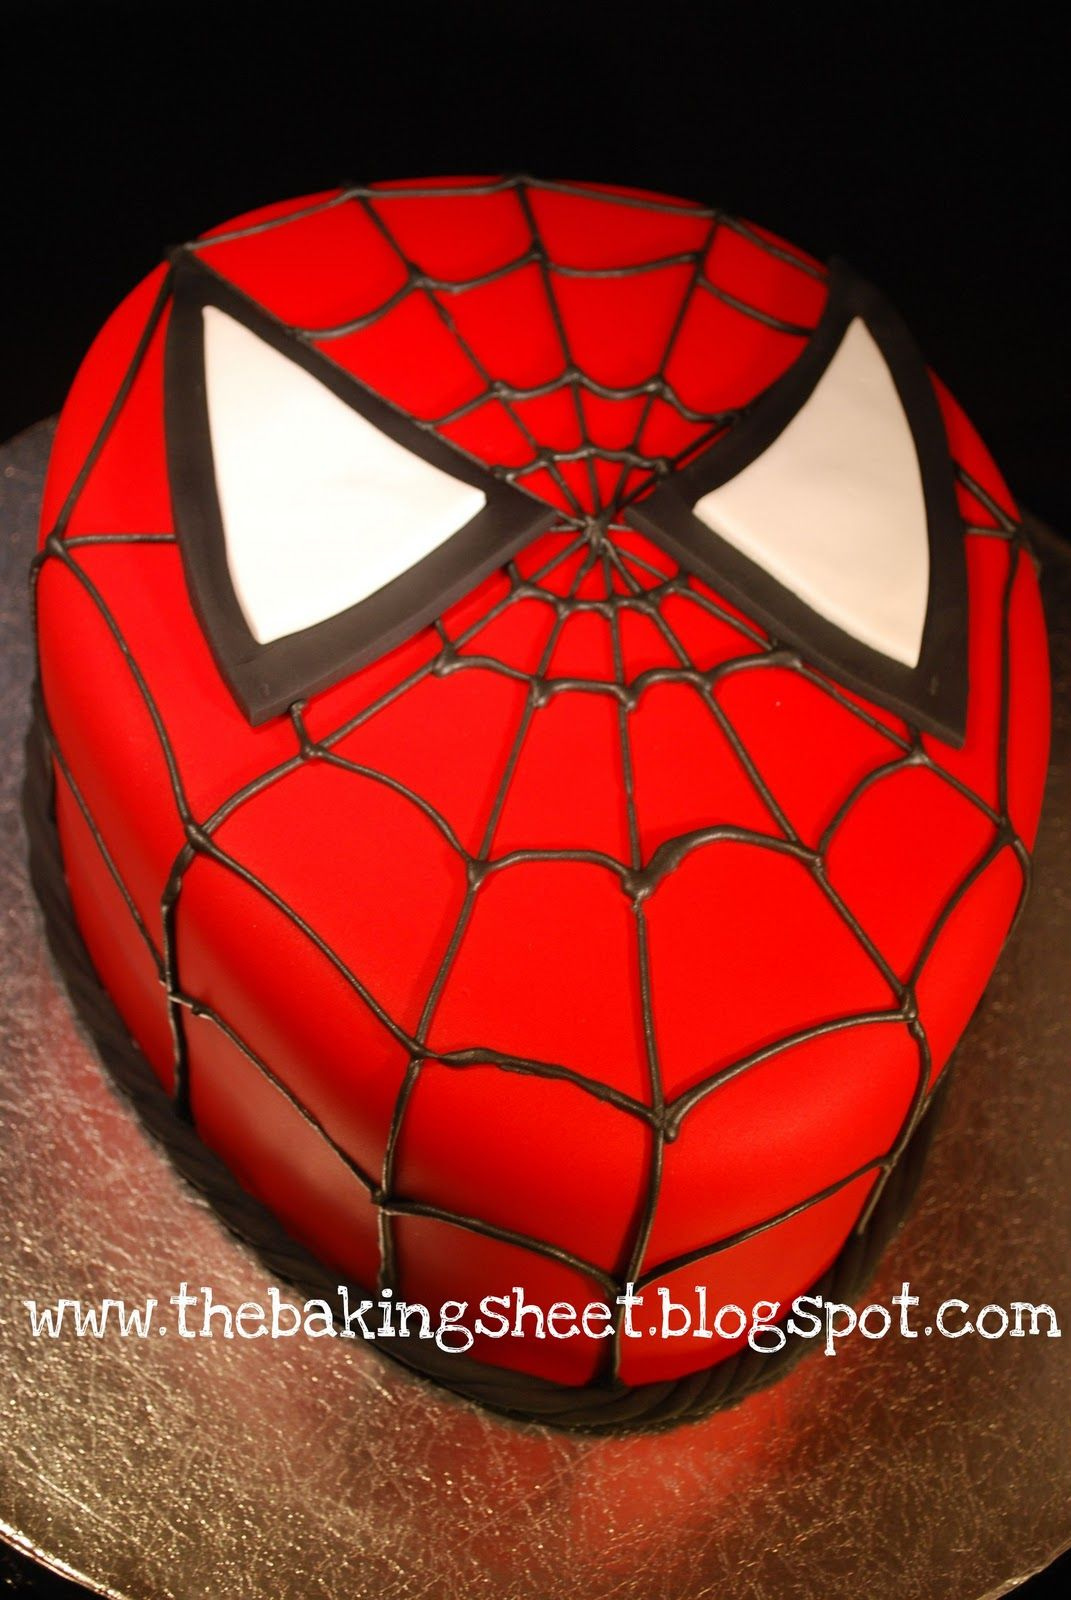 Red Cake with Buttercream Filling Fondant Finish Decoration Royal